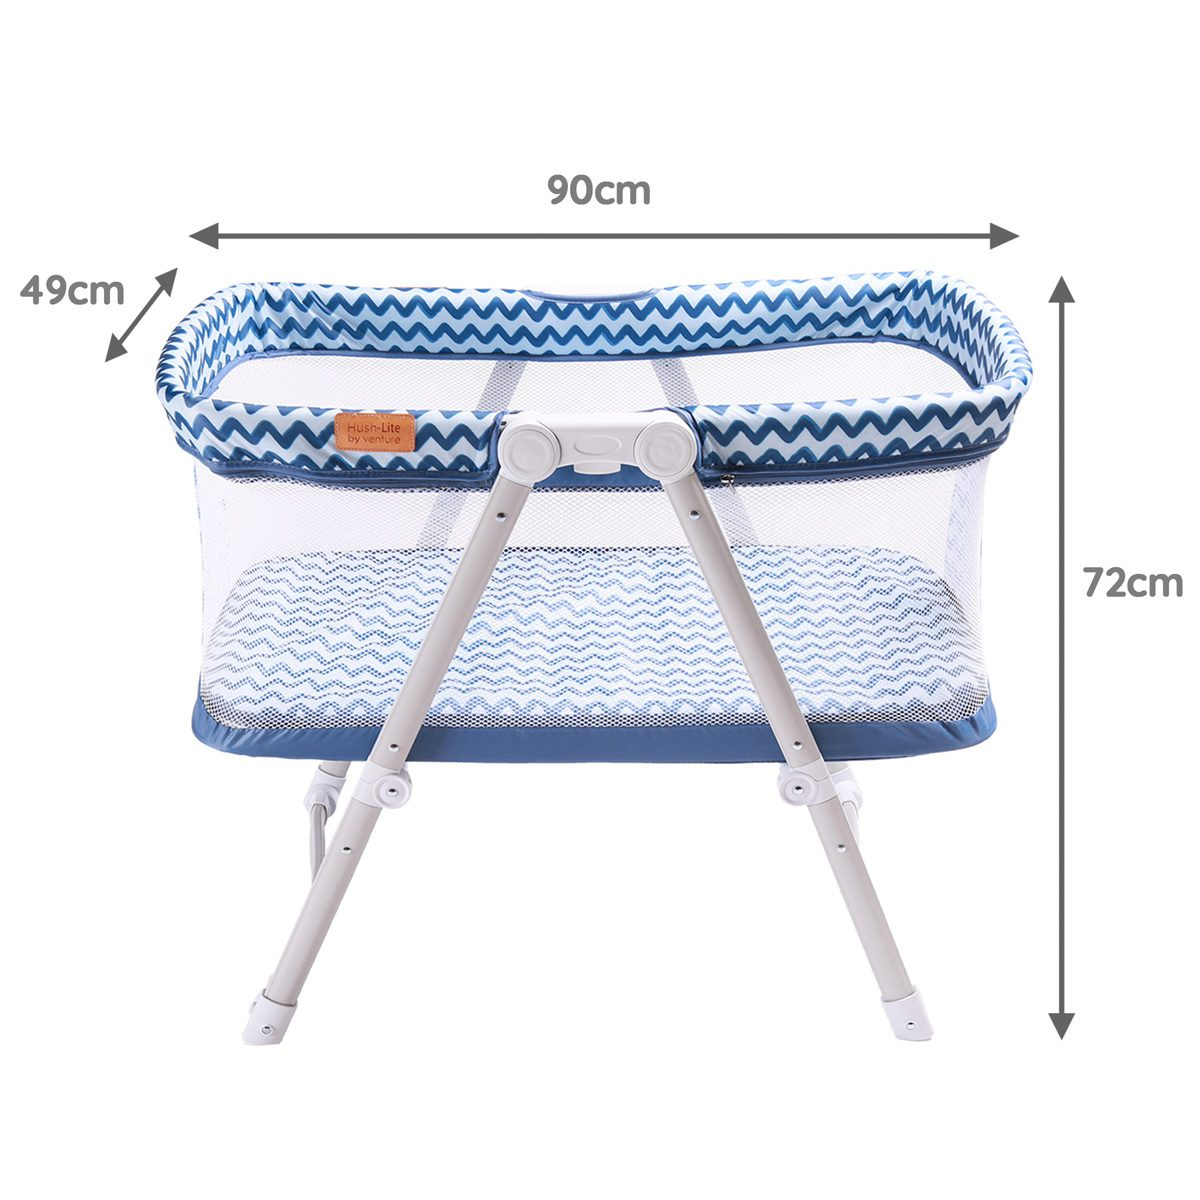 Blue Hush-Lite travel crib dimensions